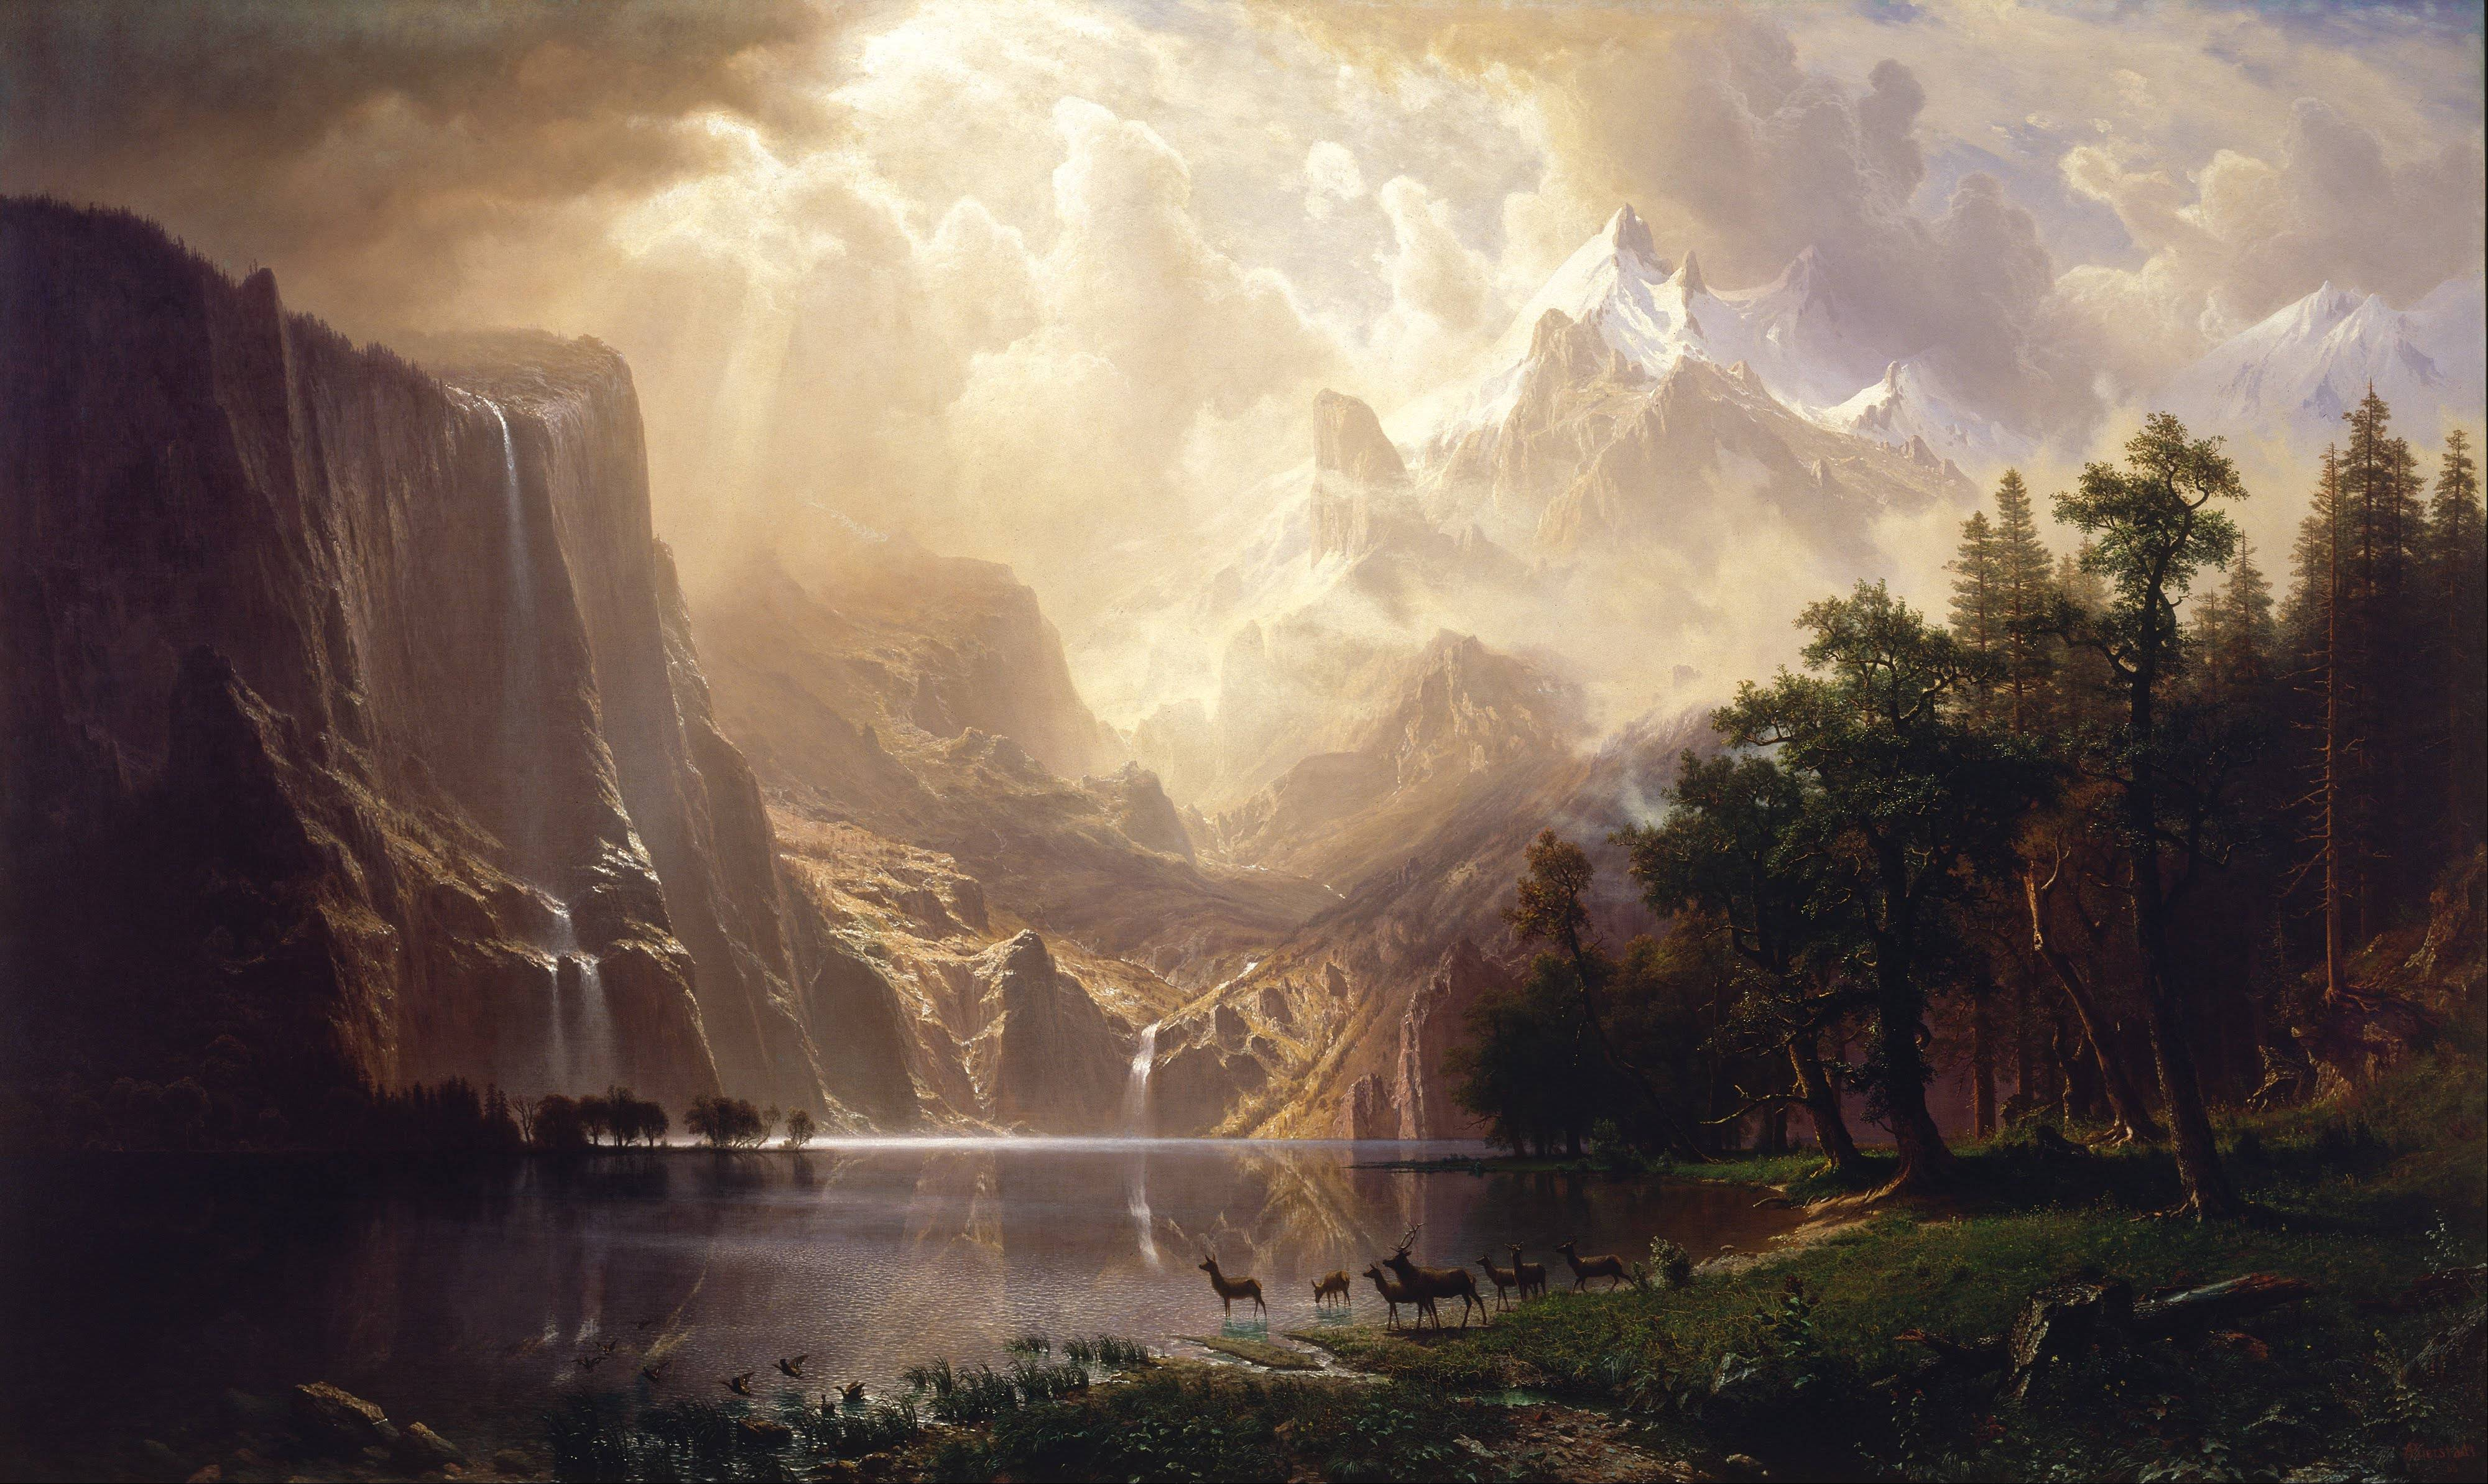 Albert Bierstadt, Sierra Nevada, California, 1868. Smithsonian American Art Museum, Washington, DC